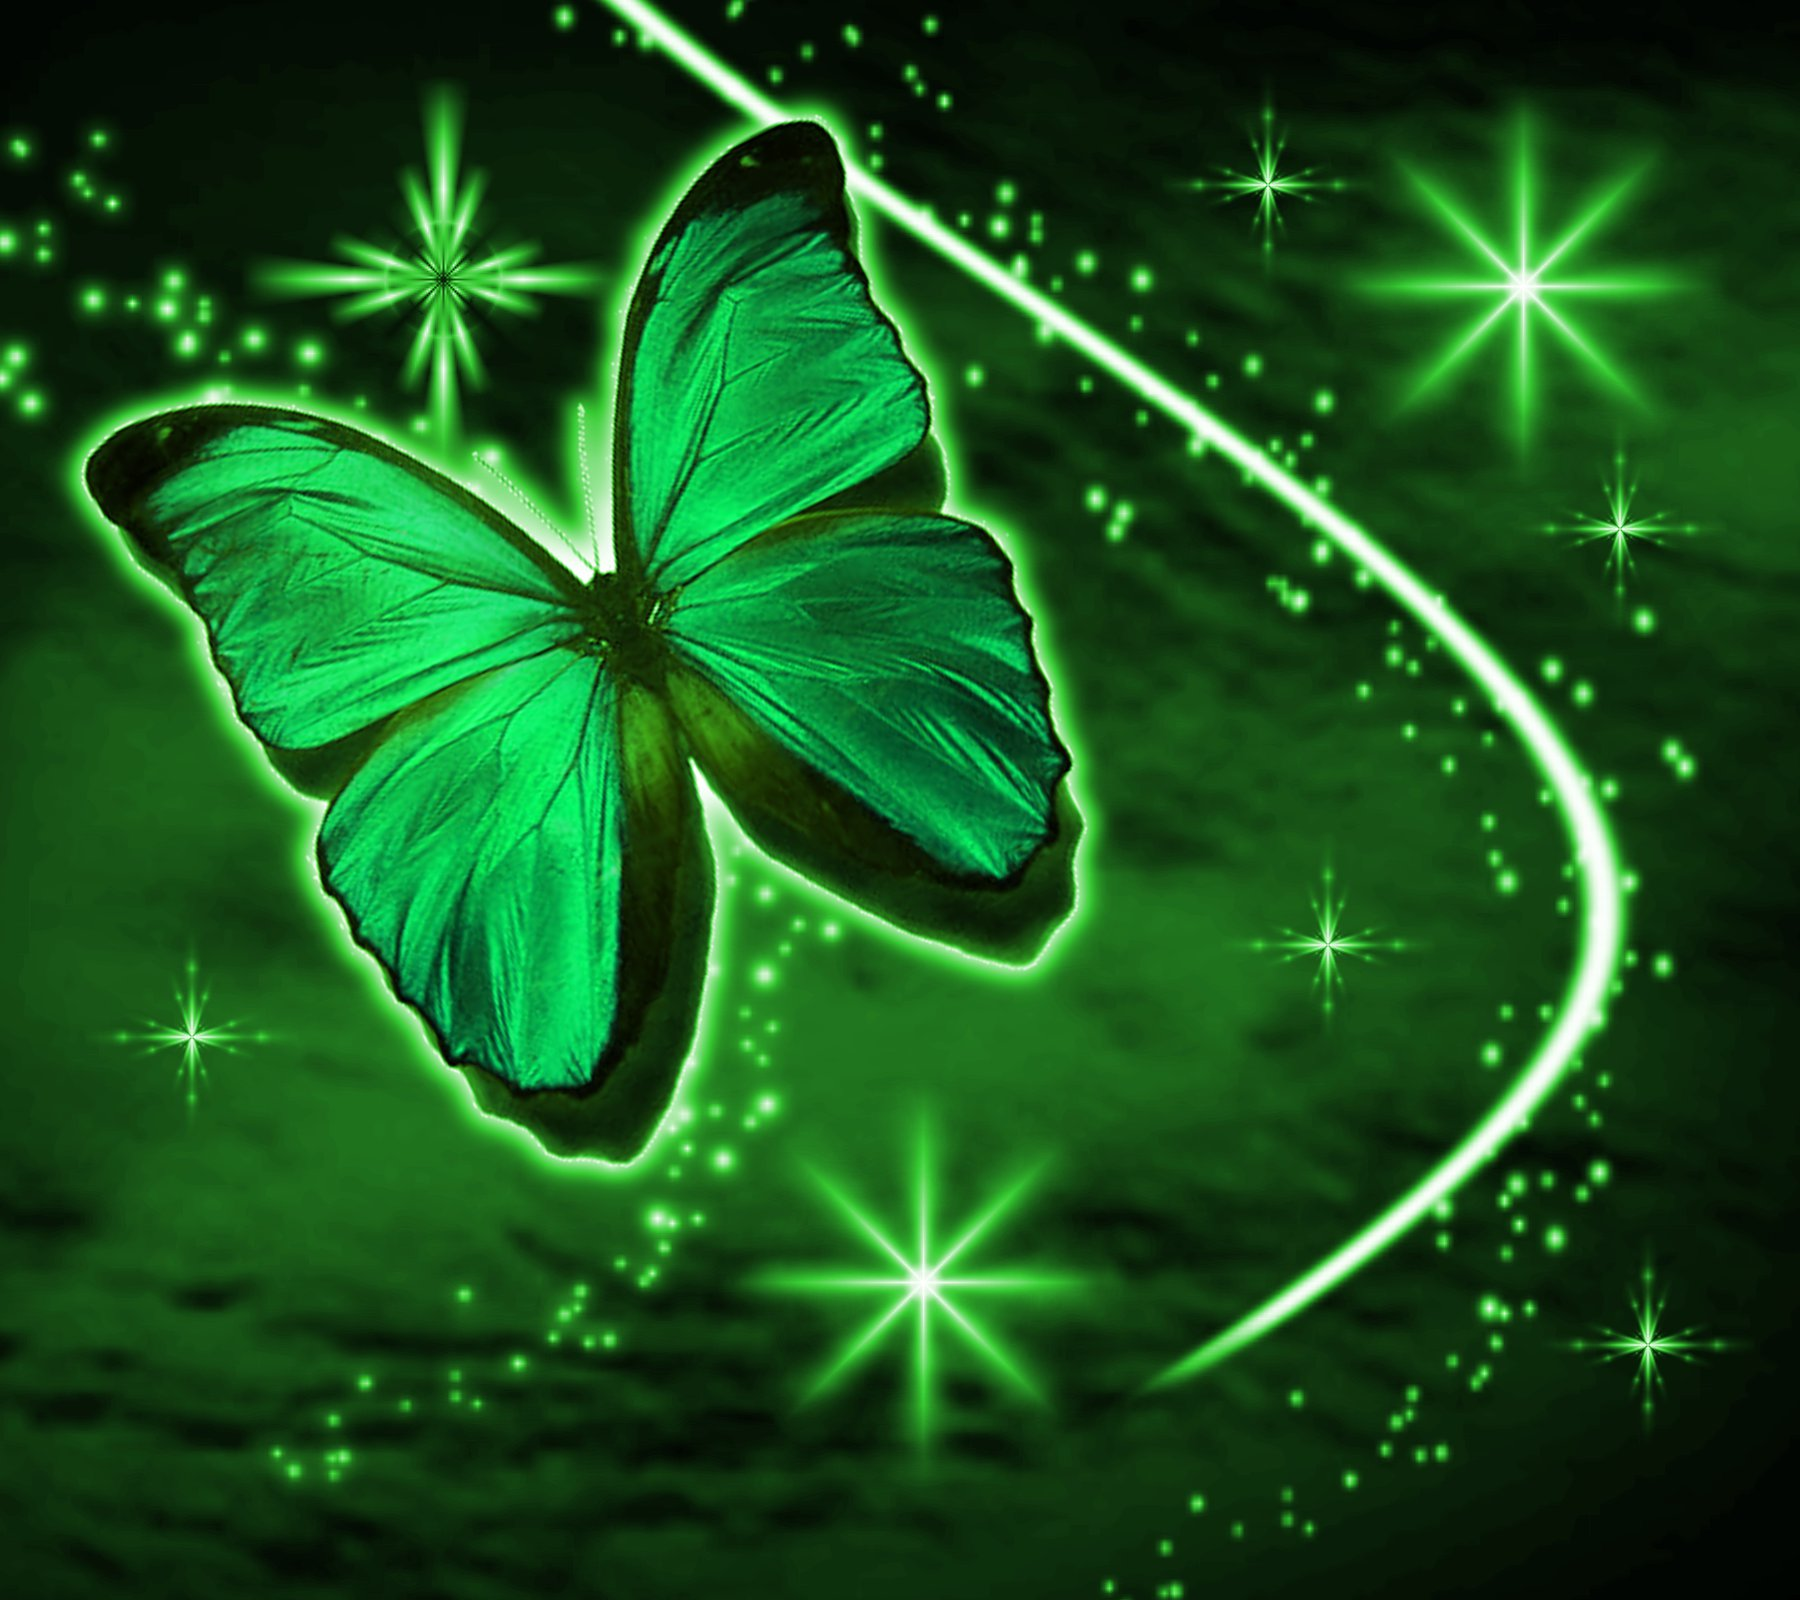 Green Butterfly With Stars Background 1800x1600 Background Image 1800x1600